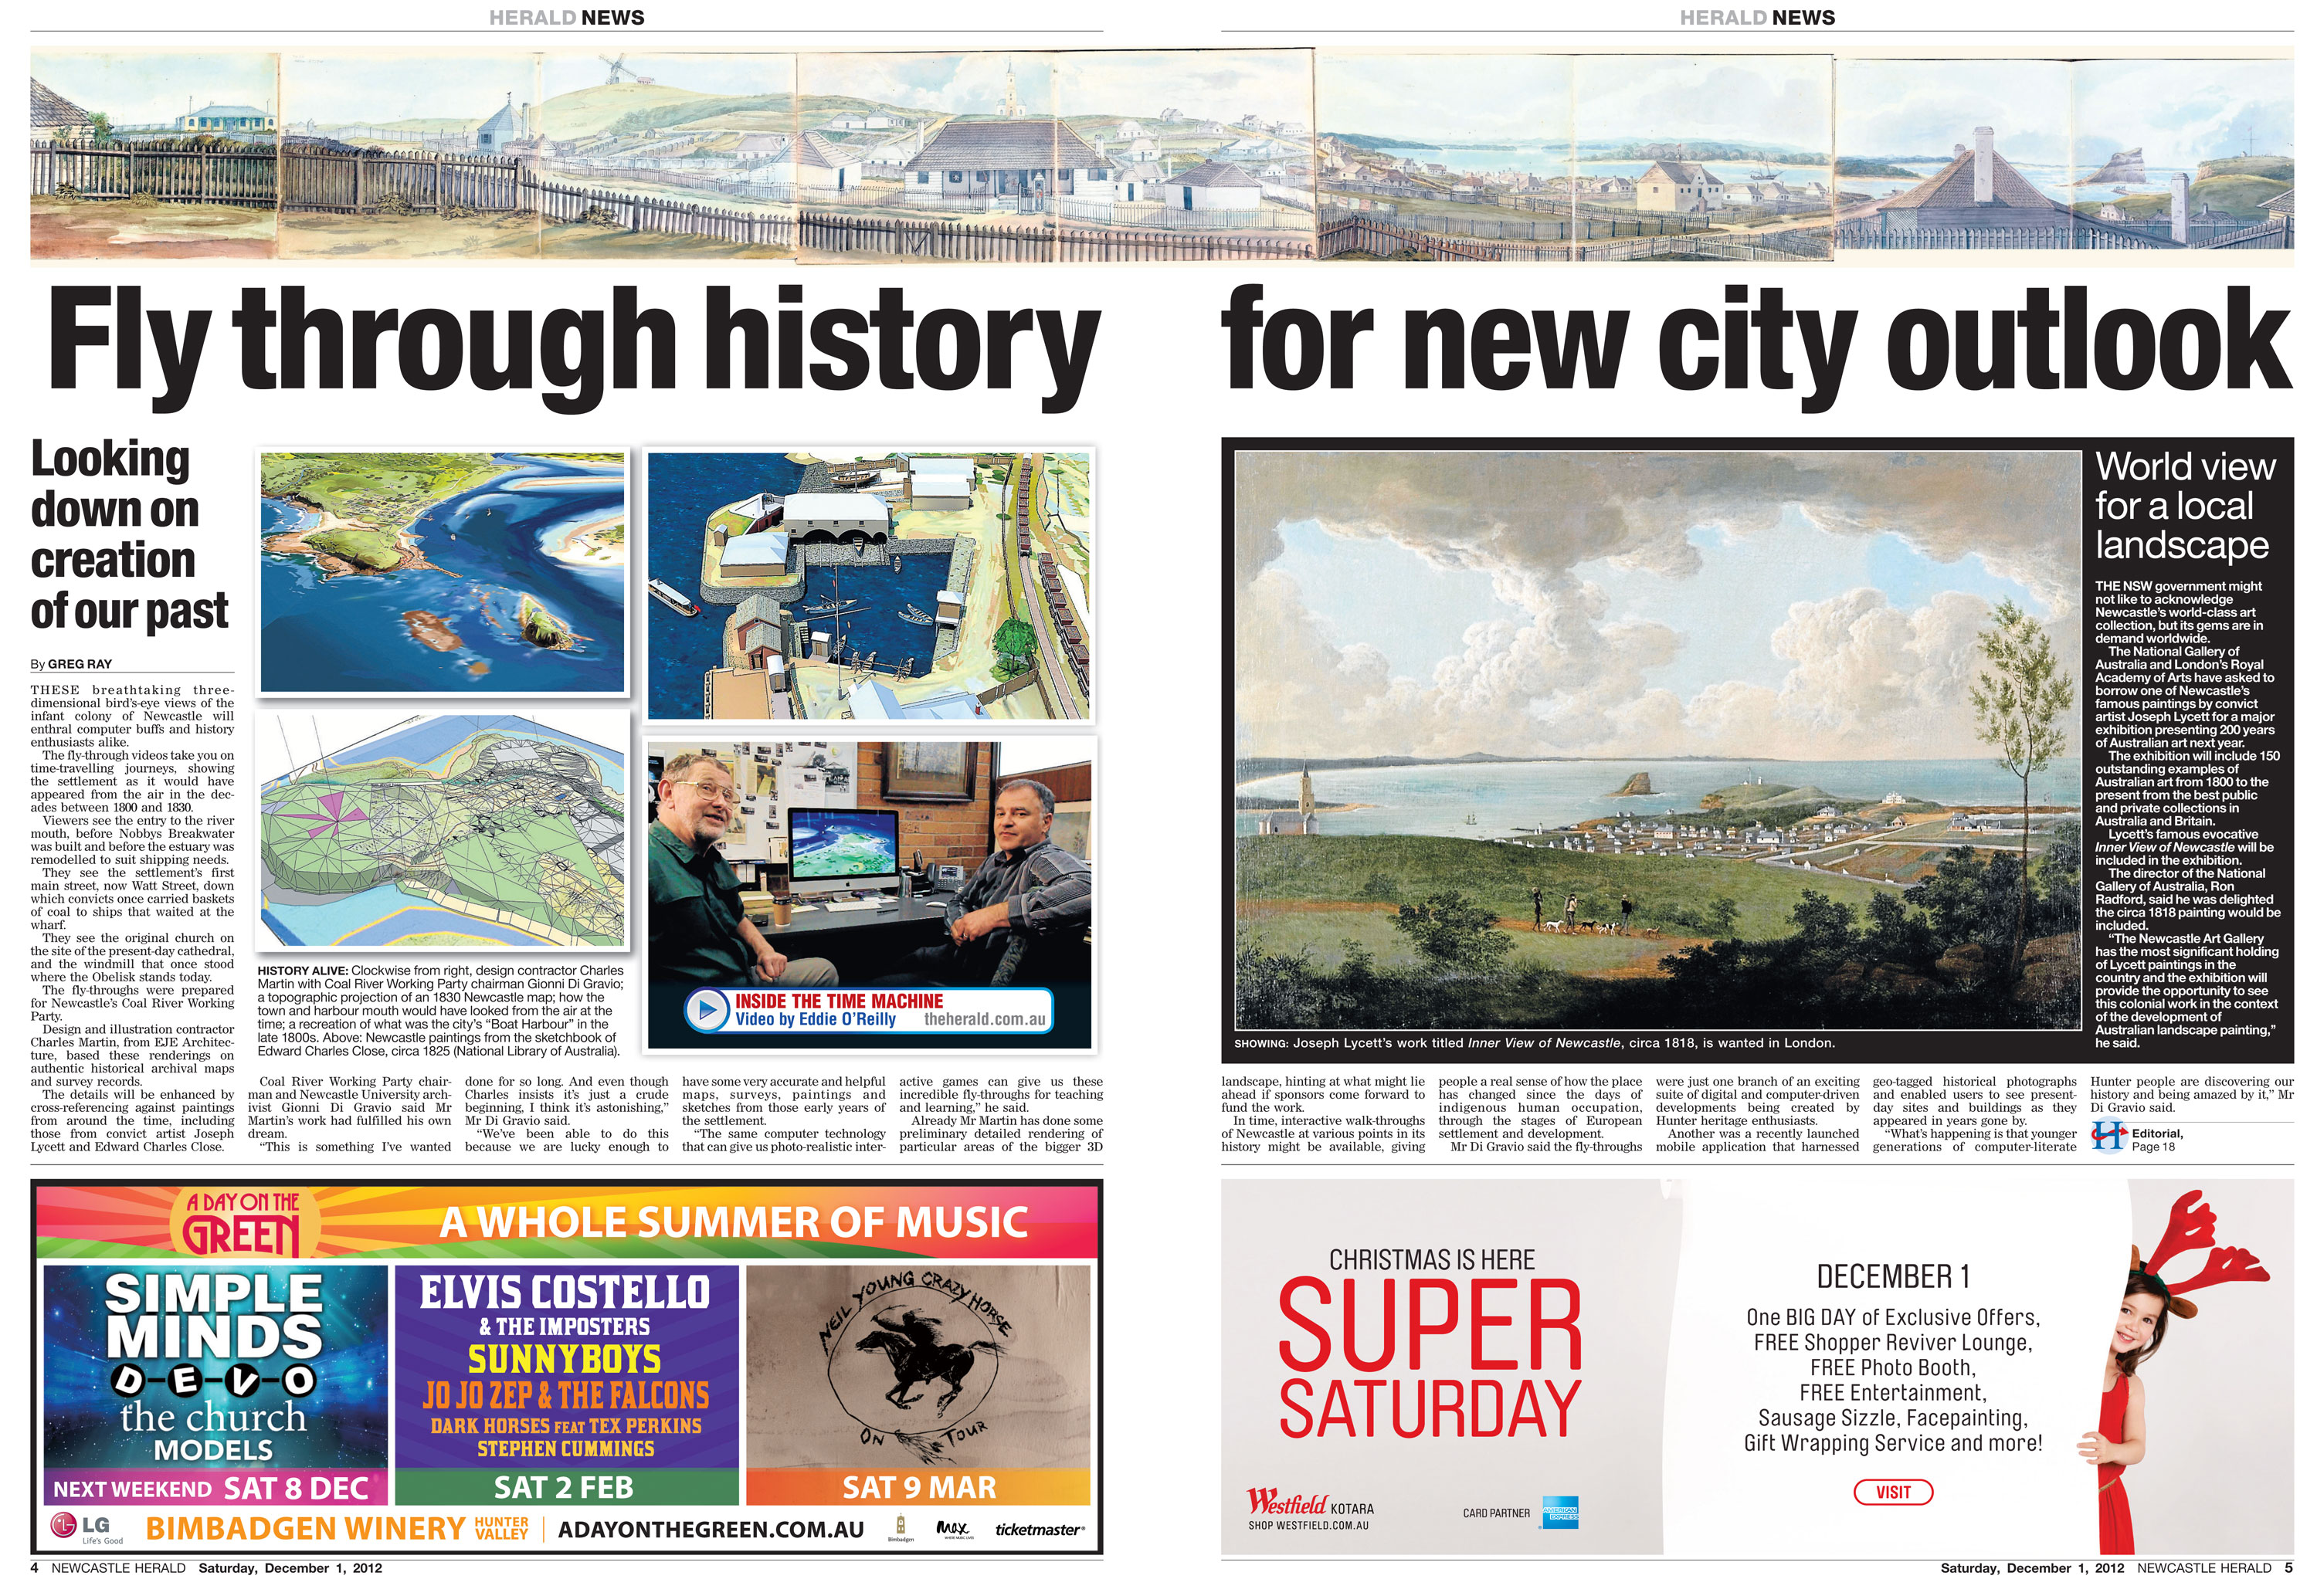 'Fly through history for new city outlook' - Newcastle Herald p.4-5